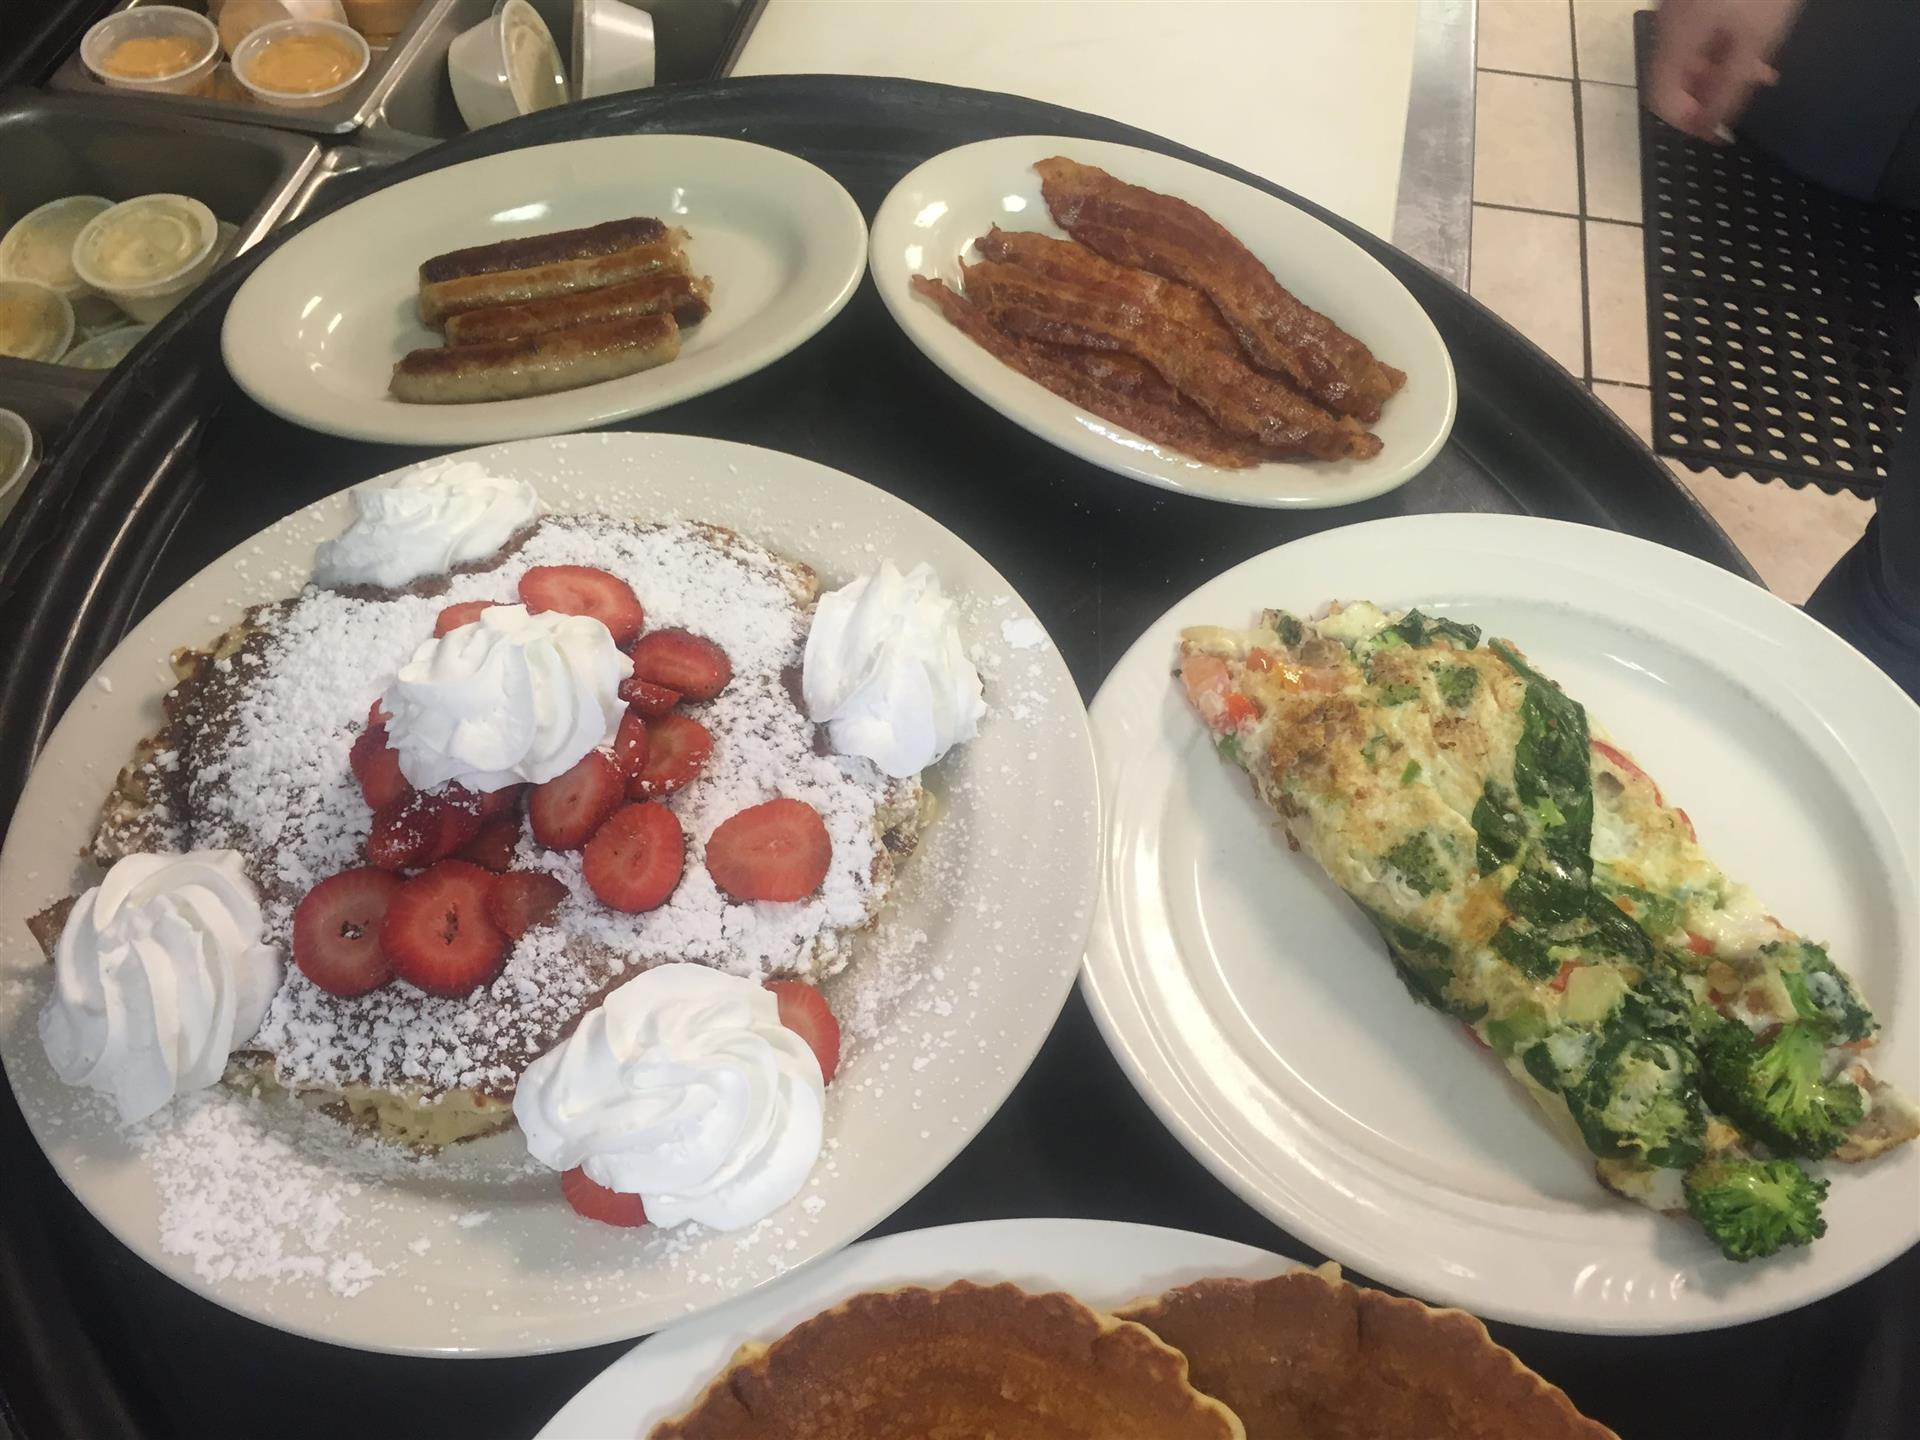 Assortment of Breakfast dishes